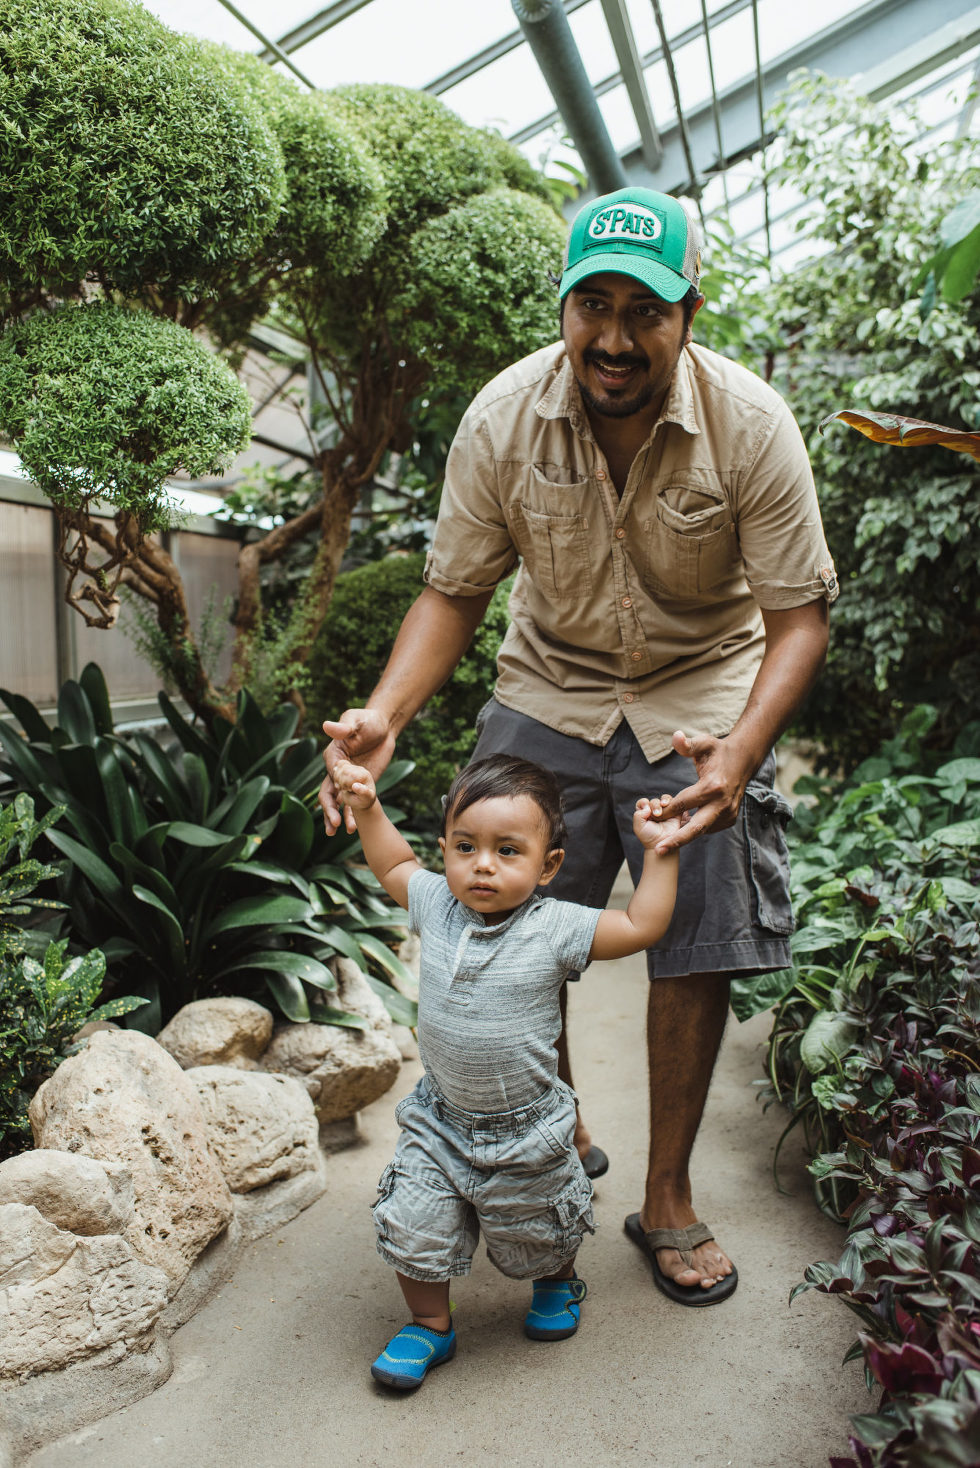 father helps young child walk through green gardens family photo sessions